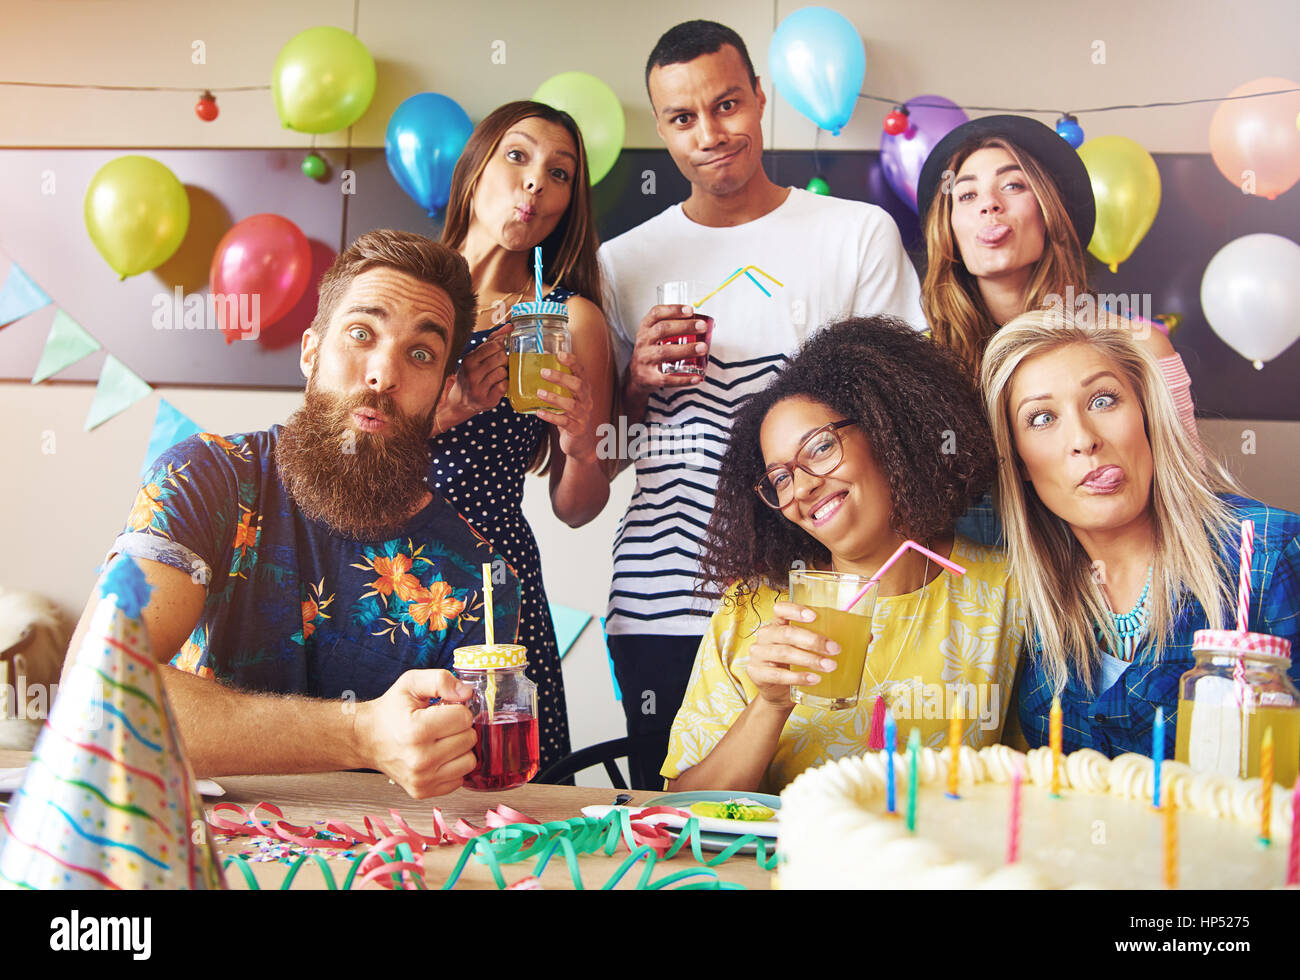 Goofy friends pulling silly faces while partying celebrating a birthday with festive party balloons and decorations - Stock Image